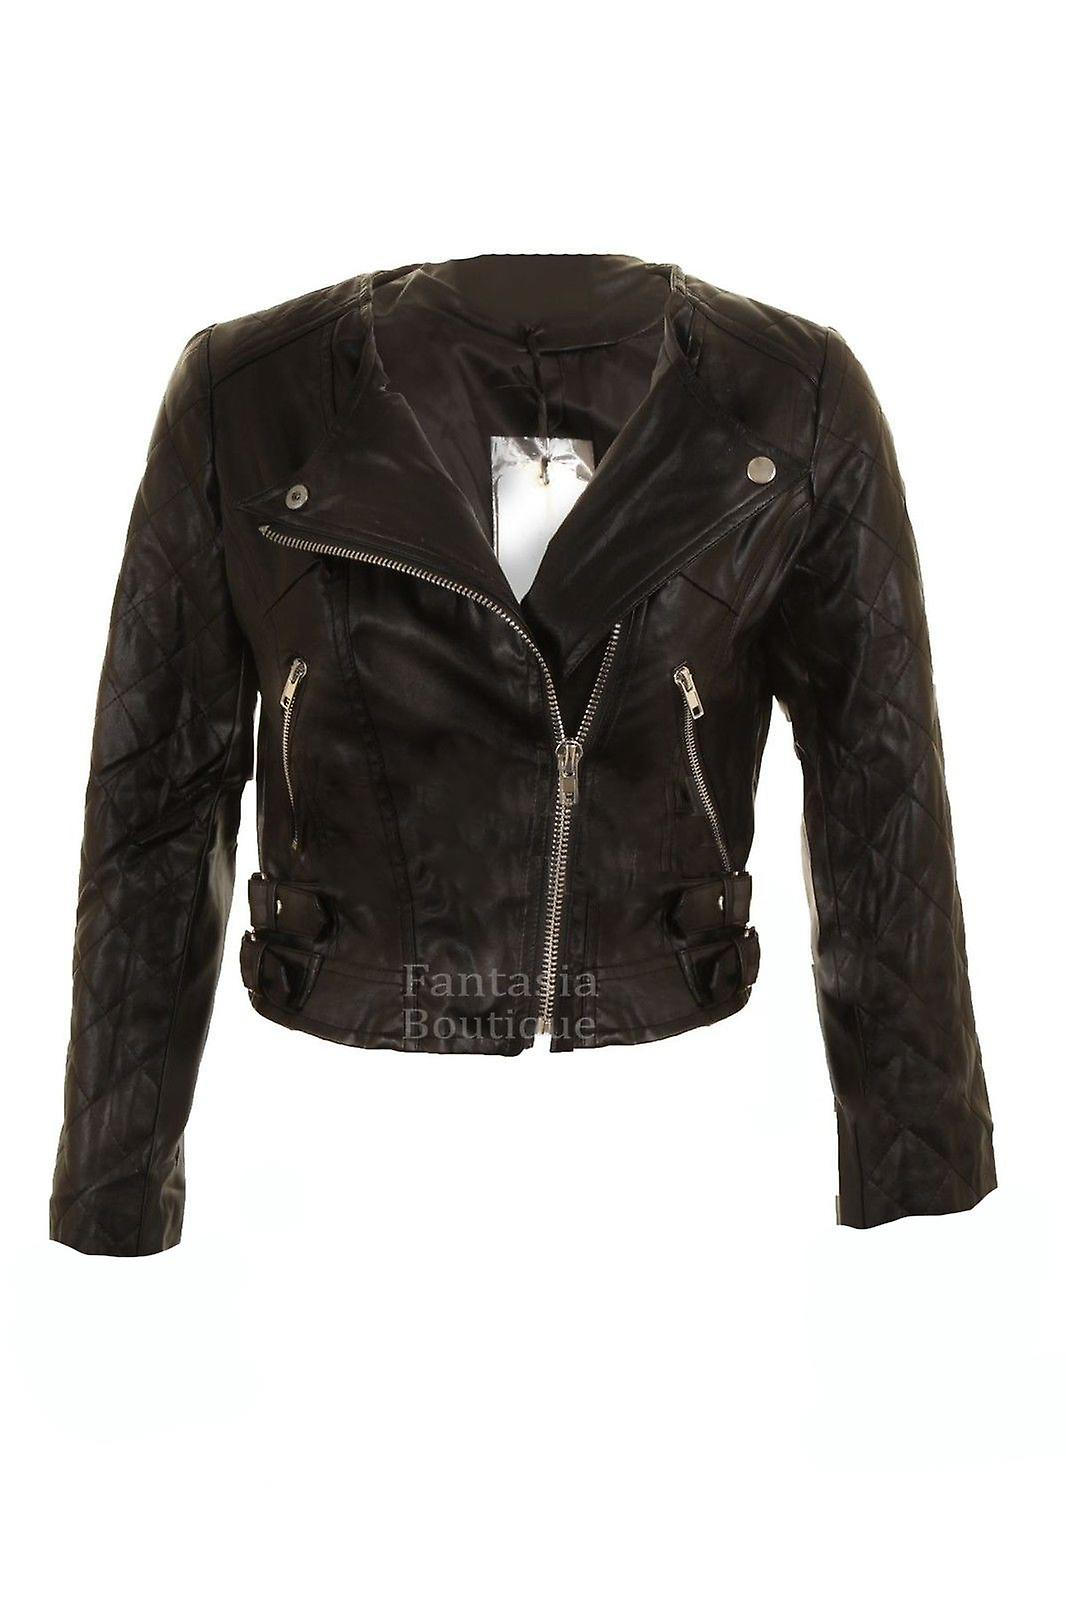 Ladies Black Biker Jacket Silver Zip PVC Leather Long Sleeve Women's Coat